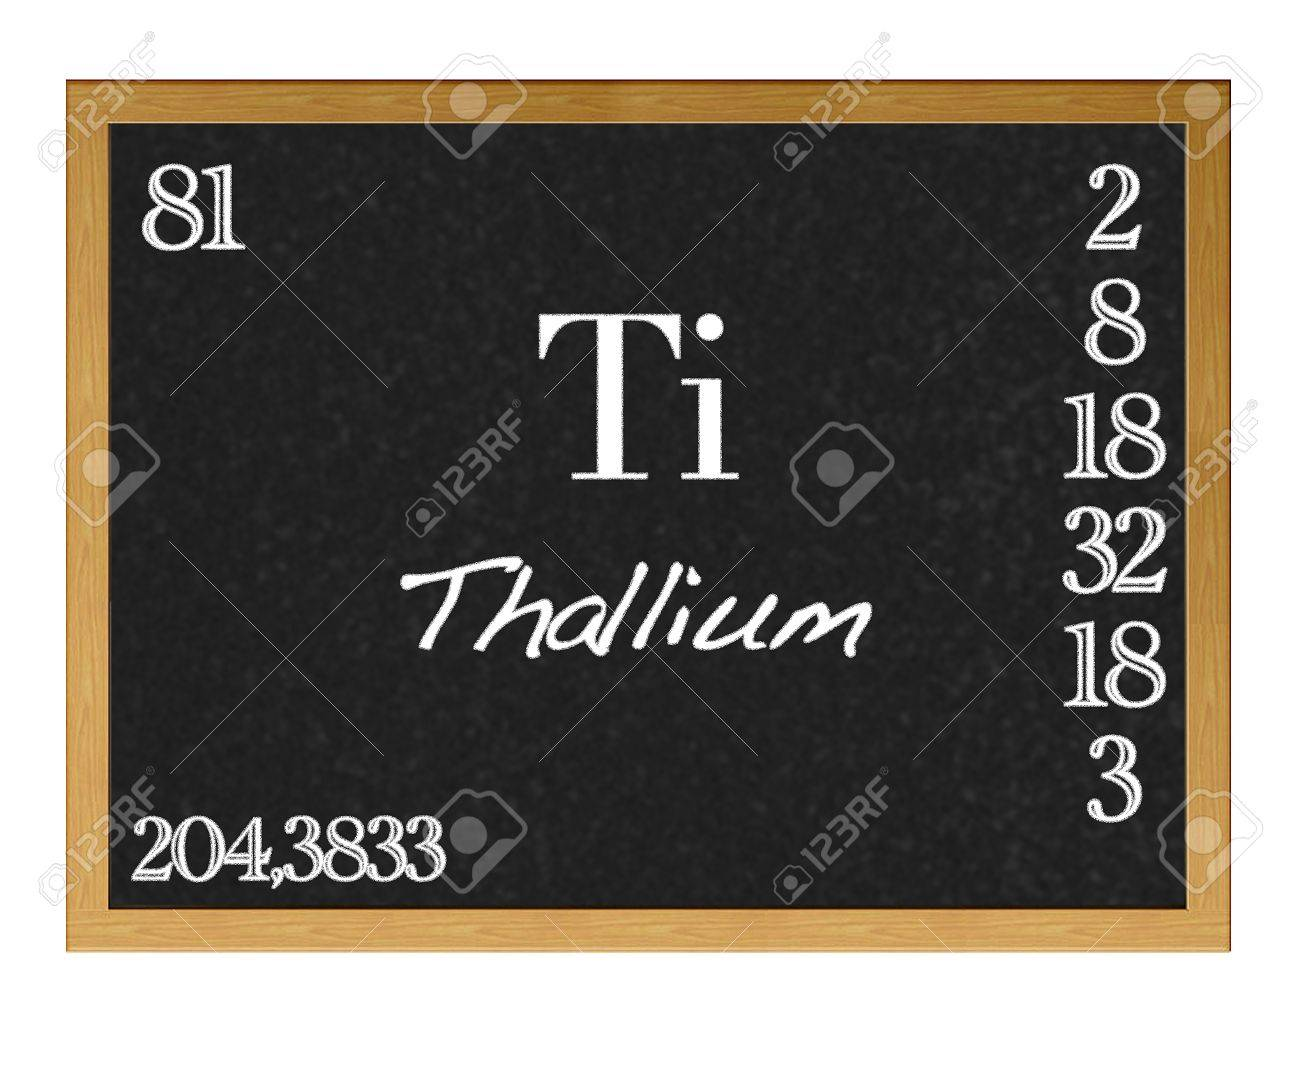 Jlab periodic table images periodic table images hobart k12 periodic table images periodic table images jlab periodic table gallery periodic table images hobart gamestrikefo Image collections